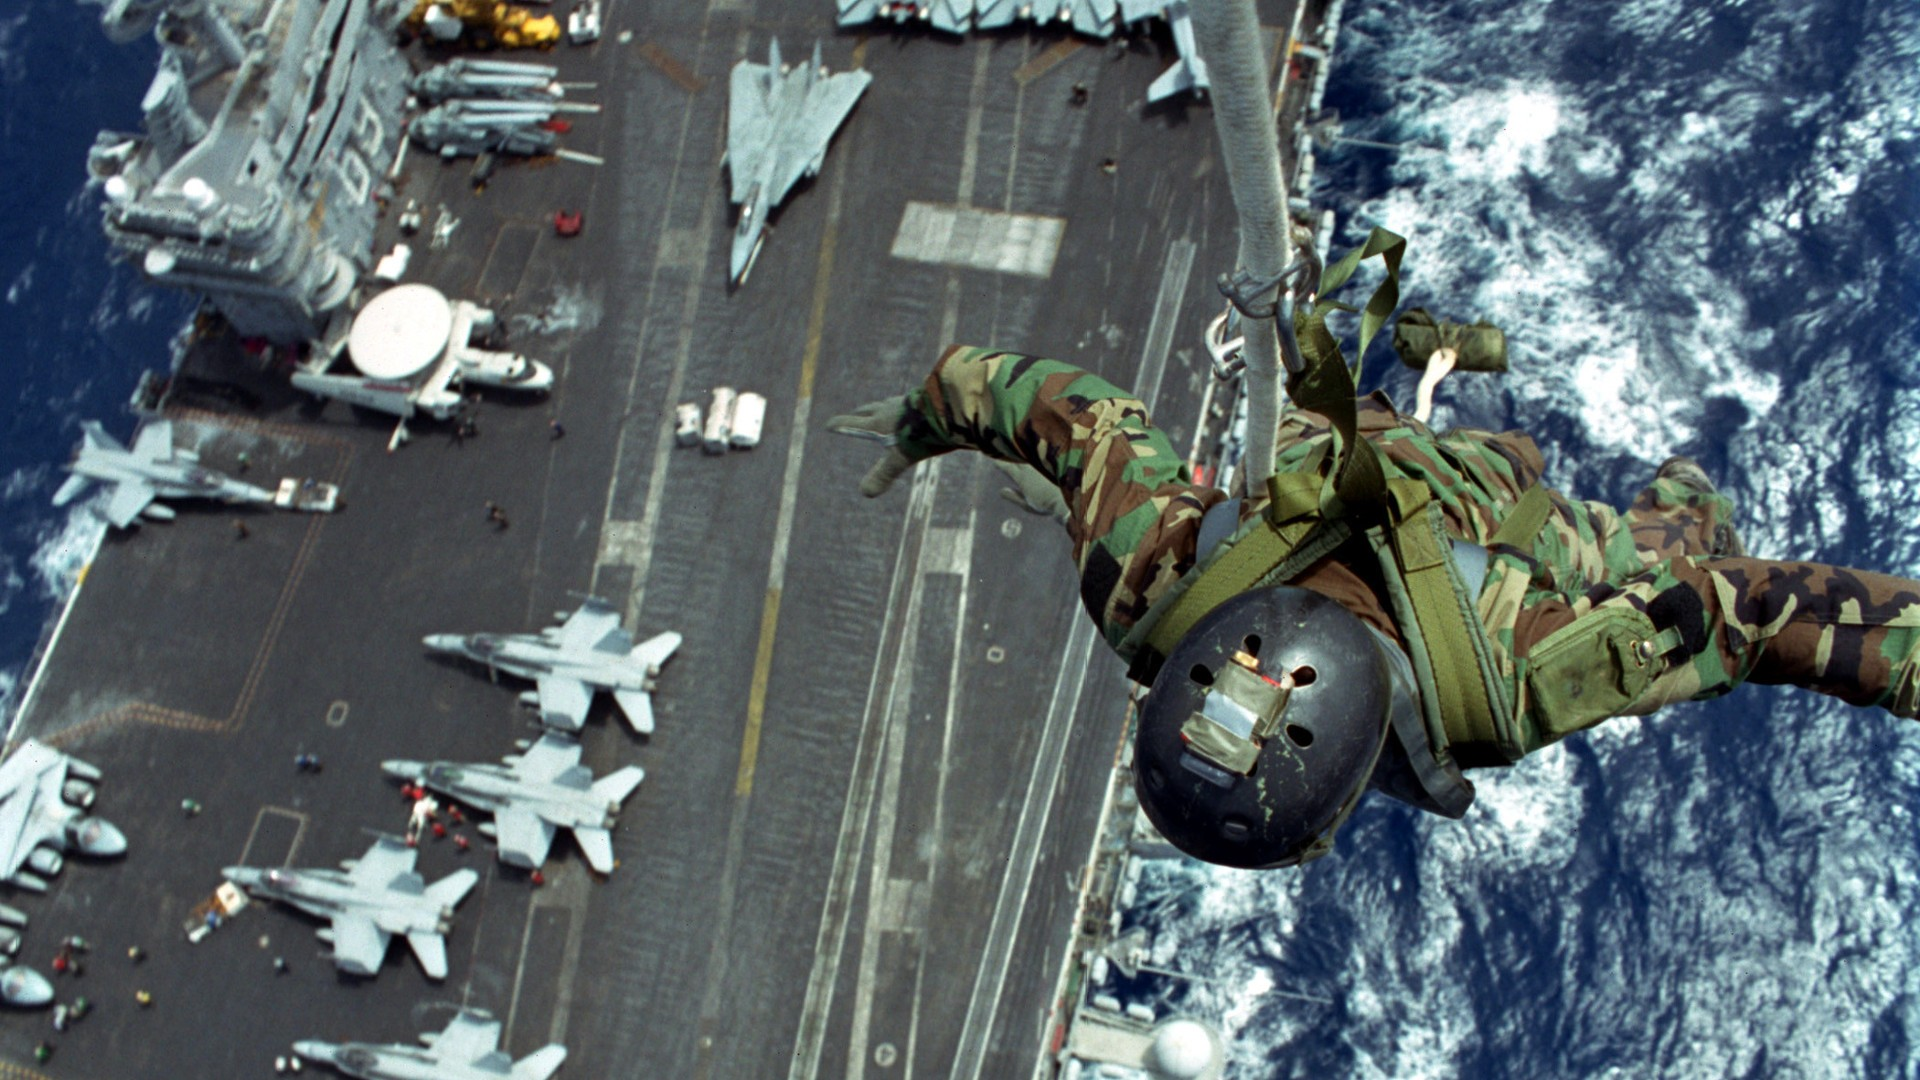 General 1920x1080 military soldier military aircraft aircraft carrier United States Navy paratroopers FA-18 Hornet Grumman F-14 Tomcat Grumman E-2 Hawkeye